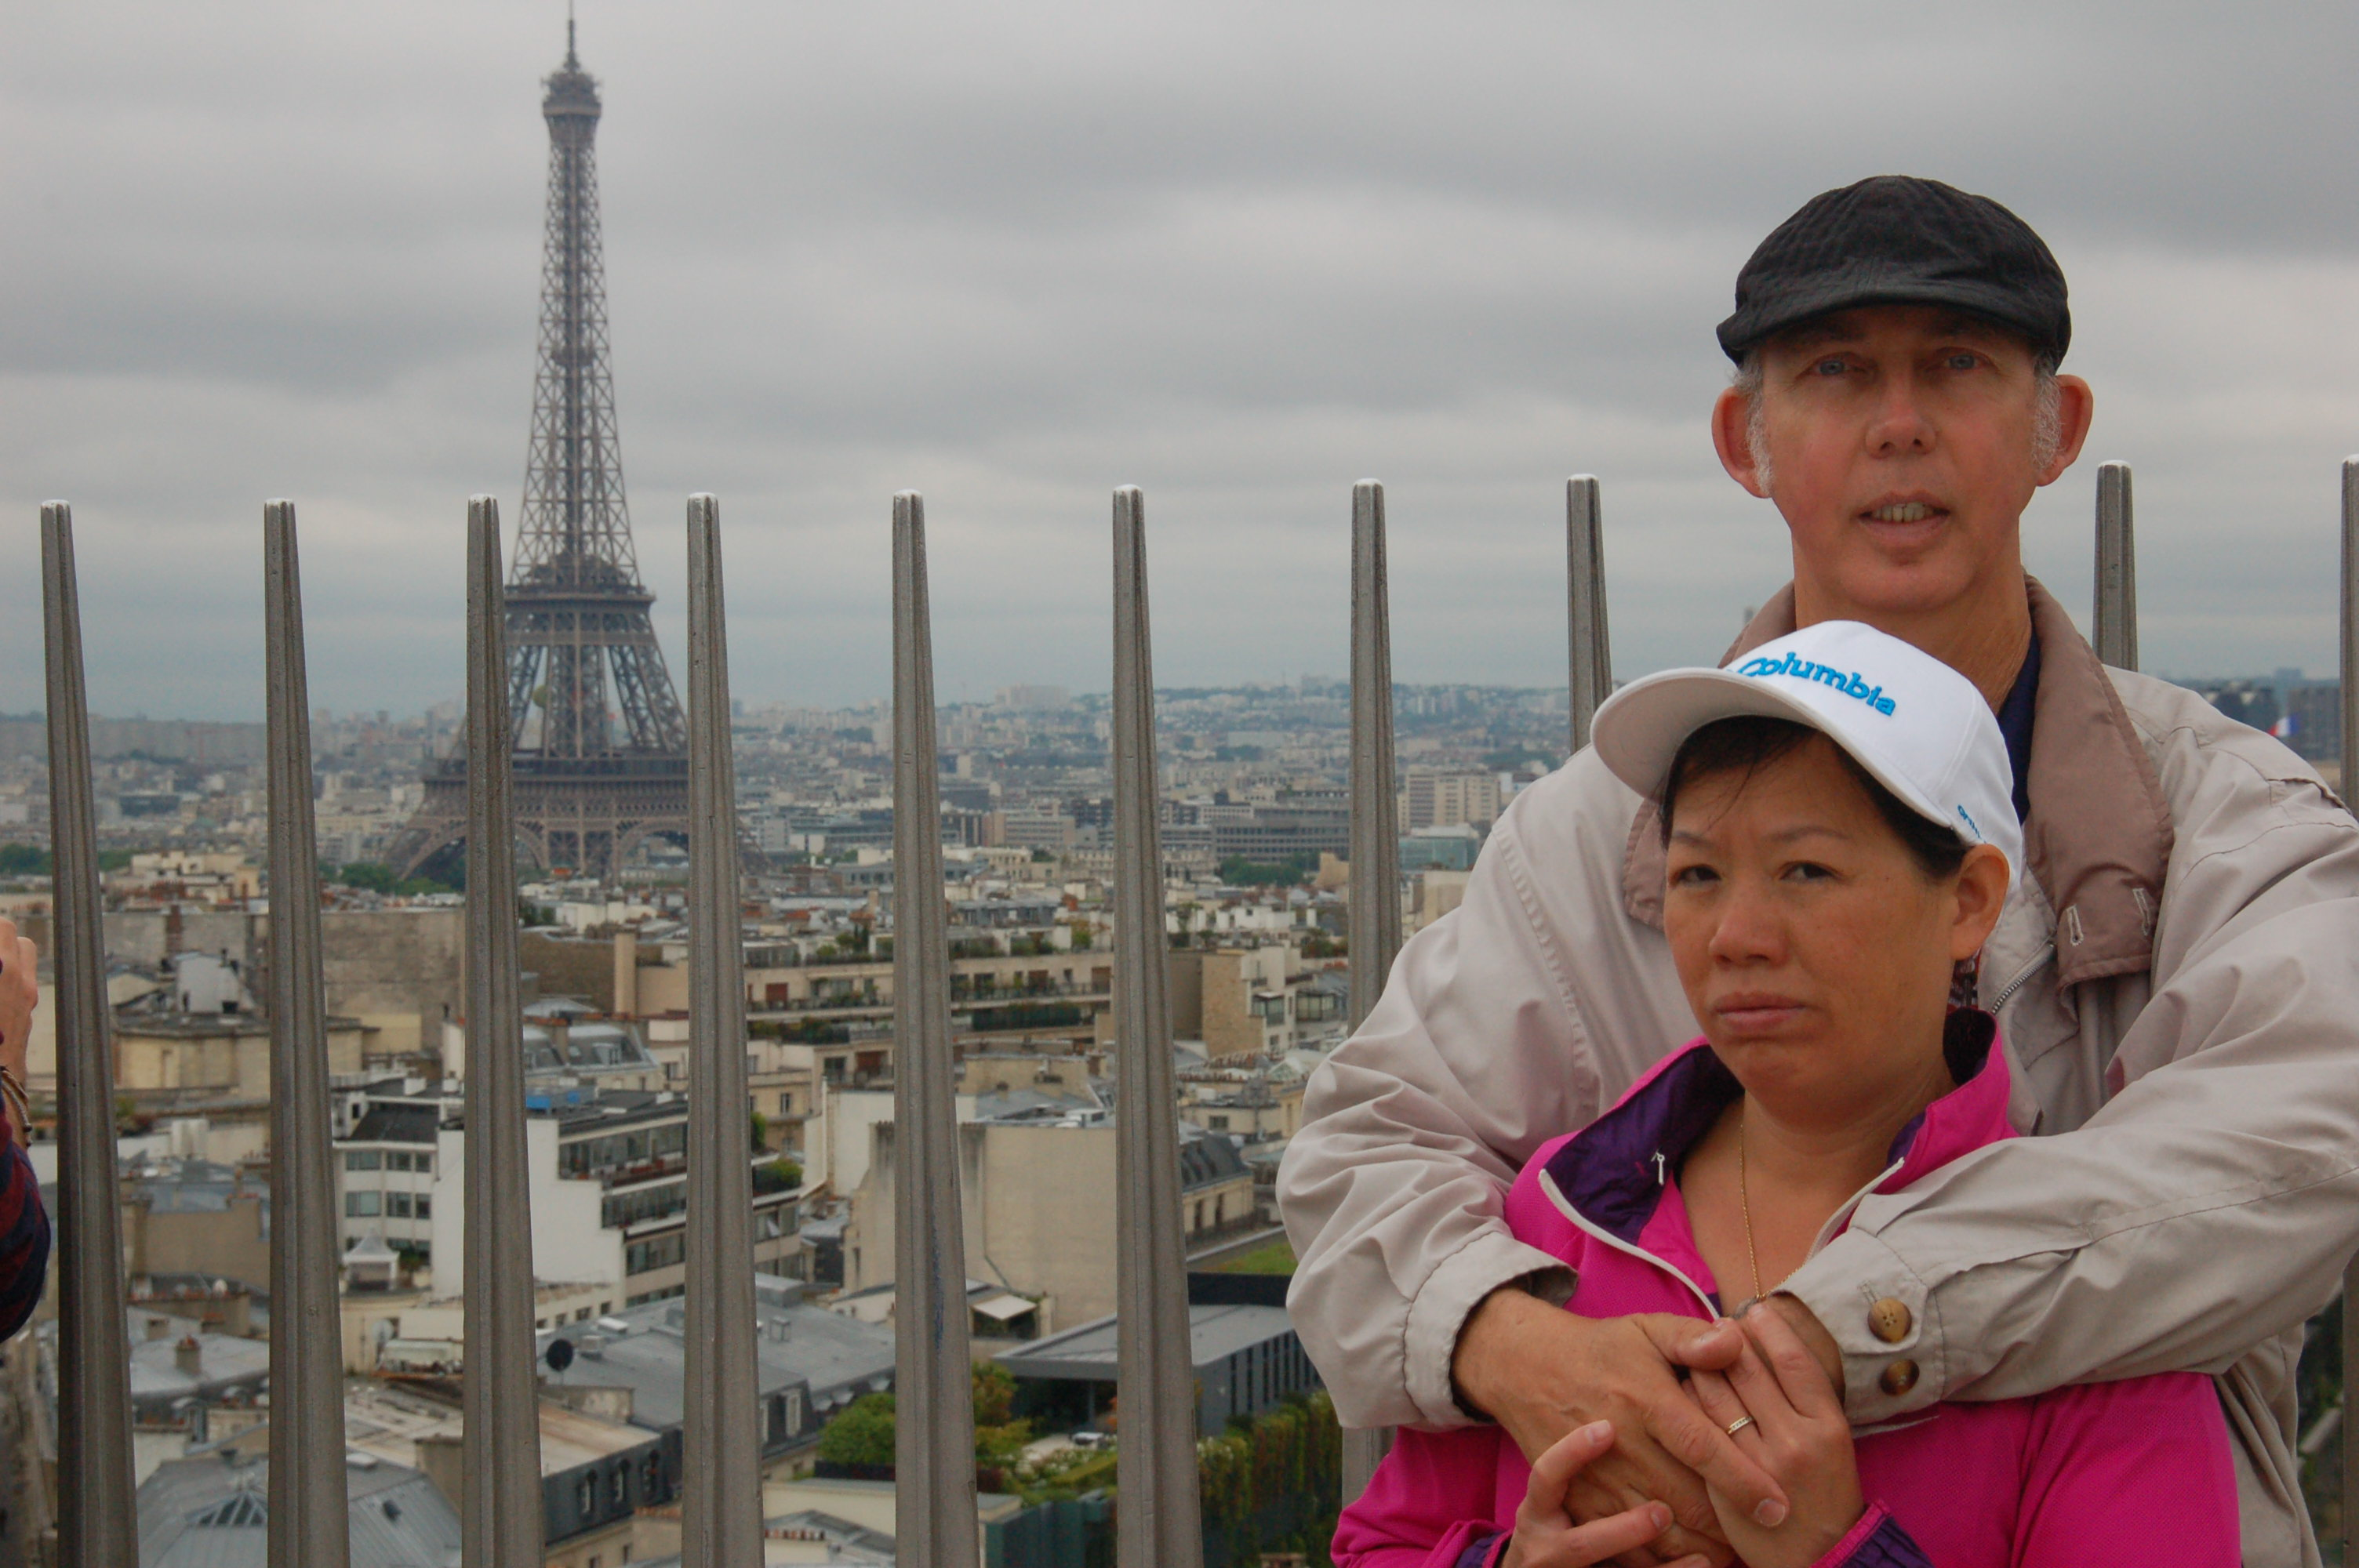 Ron And Winnie On The Arc De Triomphe